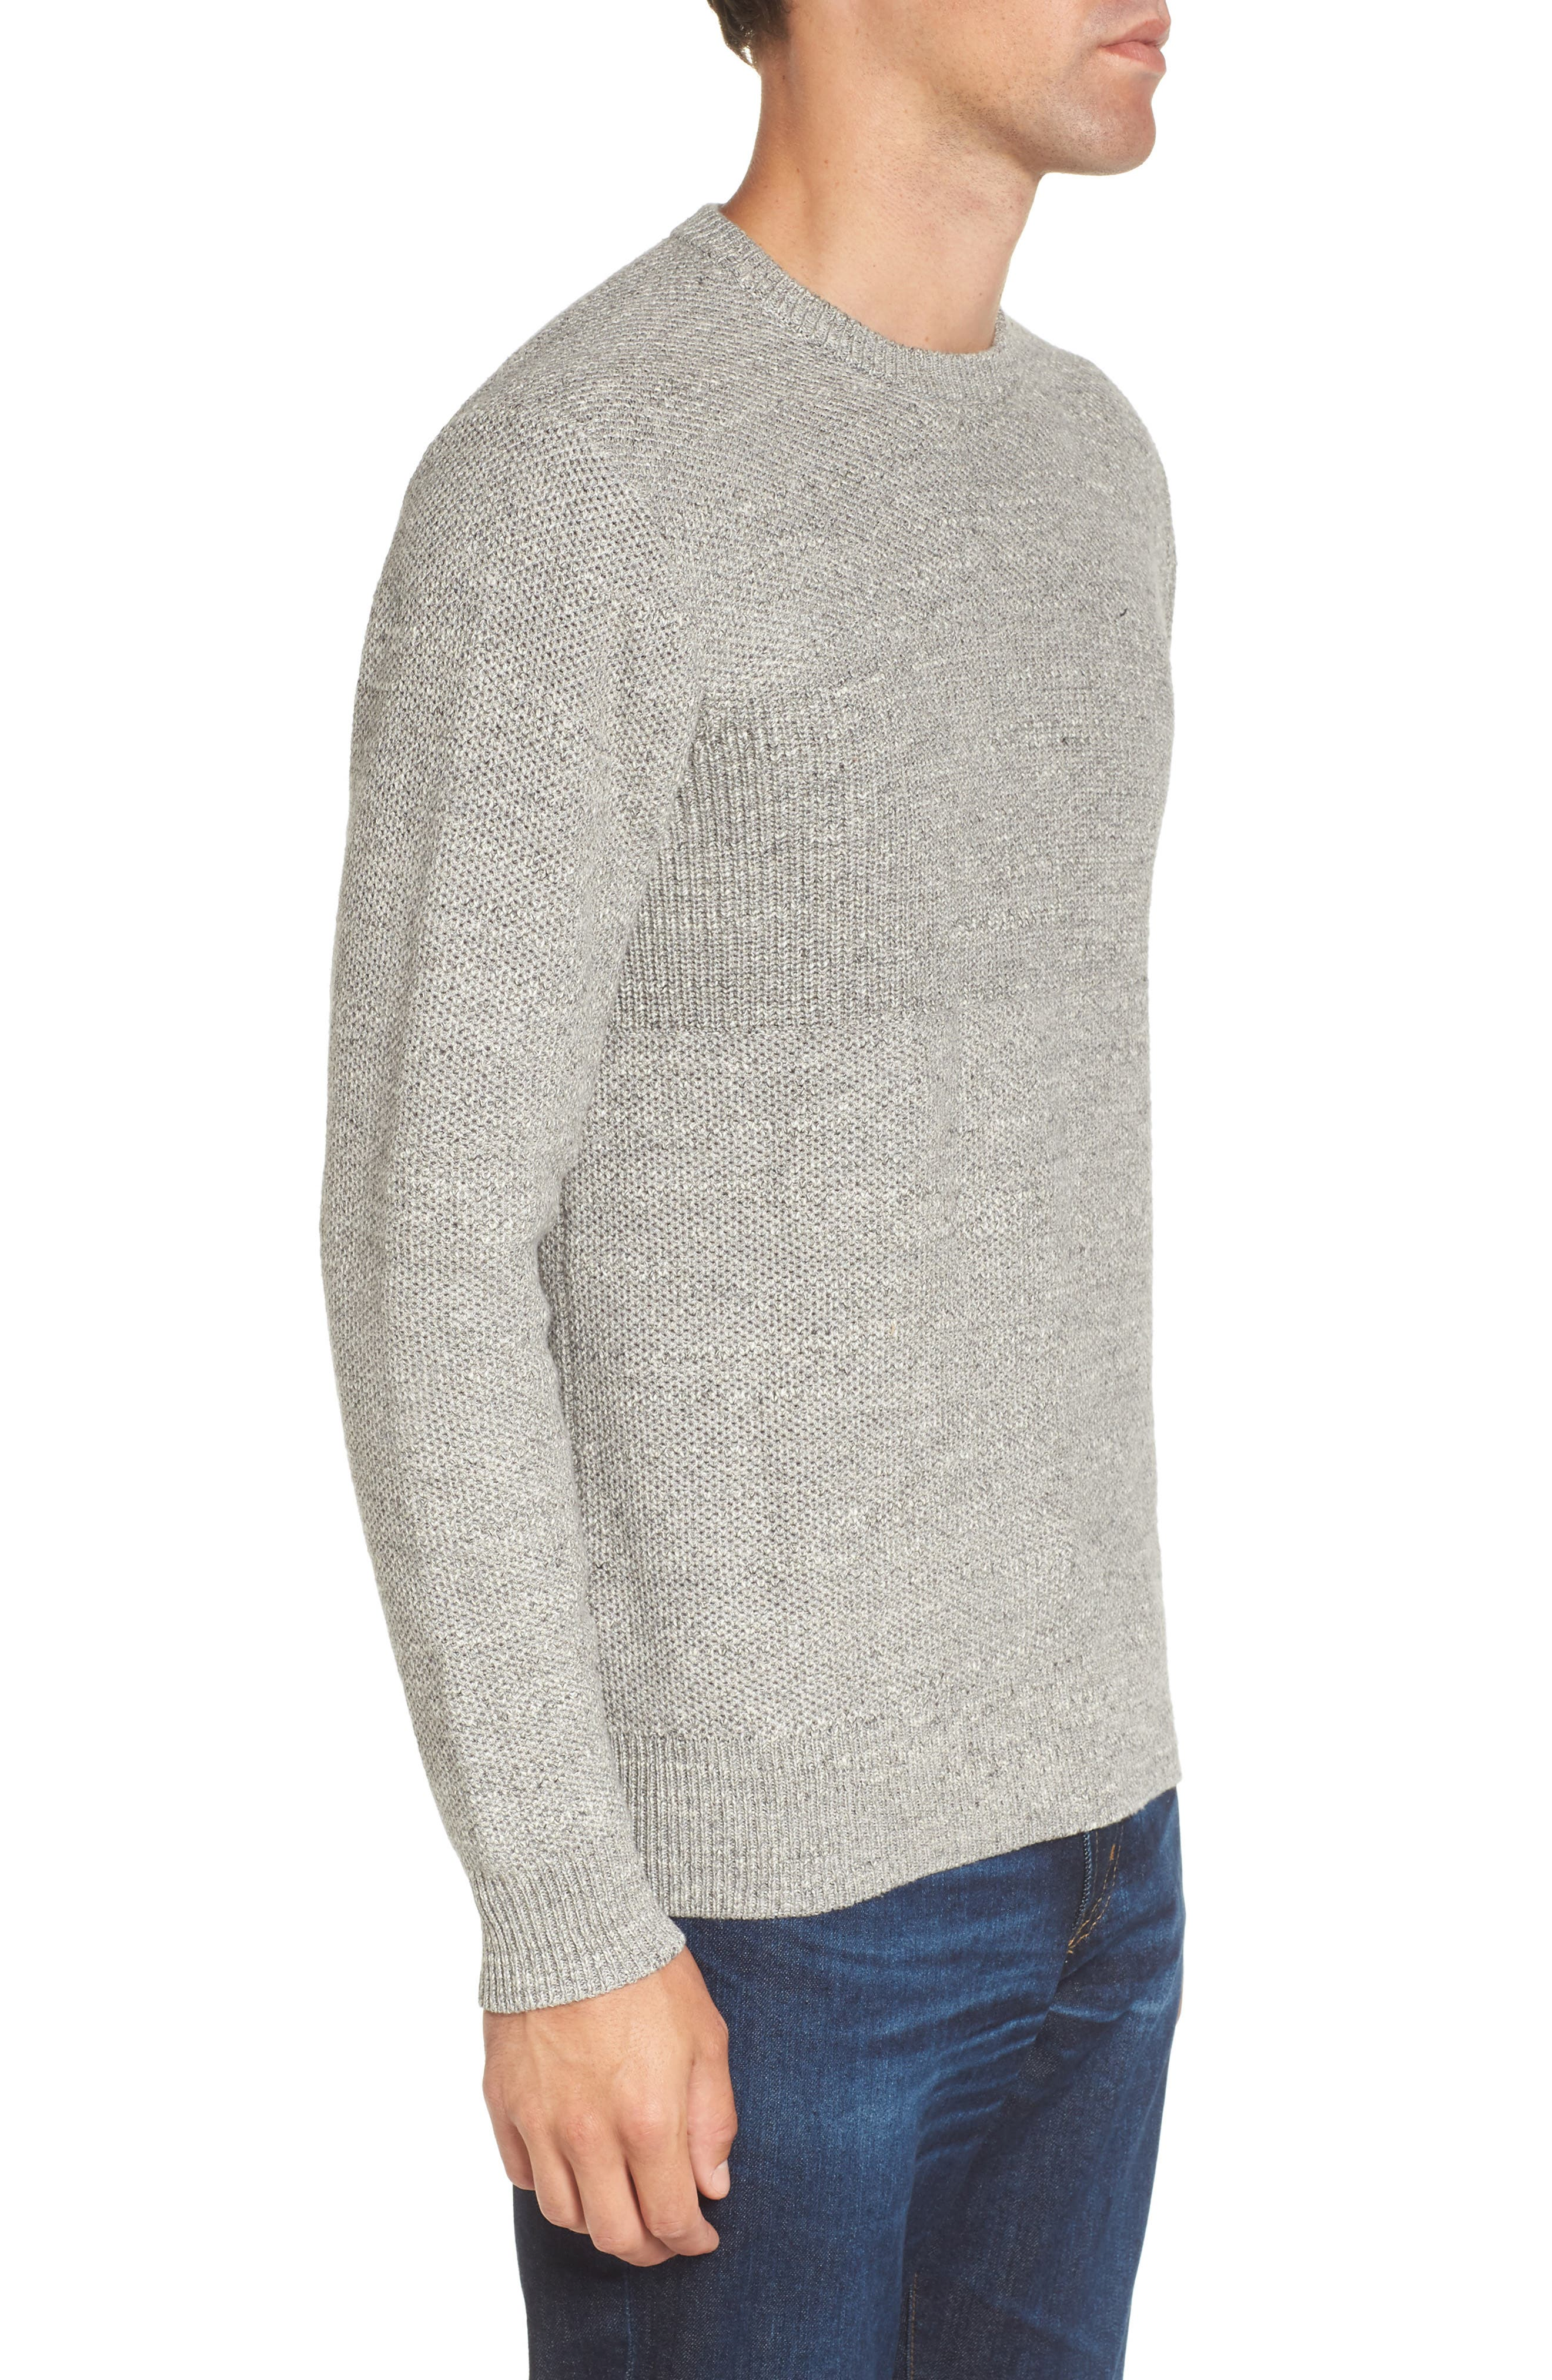 Ardsley Textured Sweater,                             Alternate thumbnail 3, color,                             052